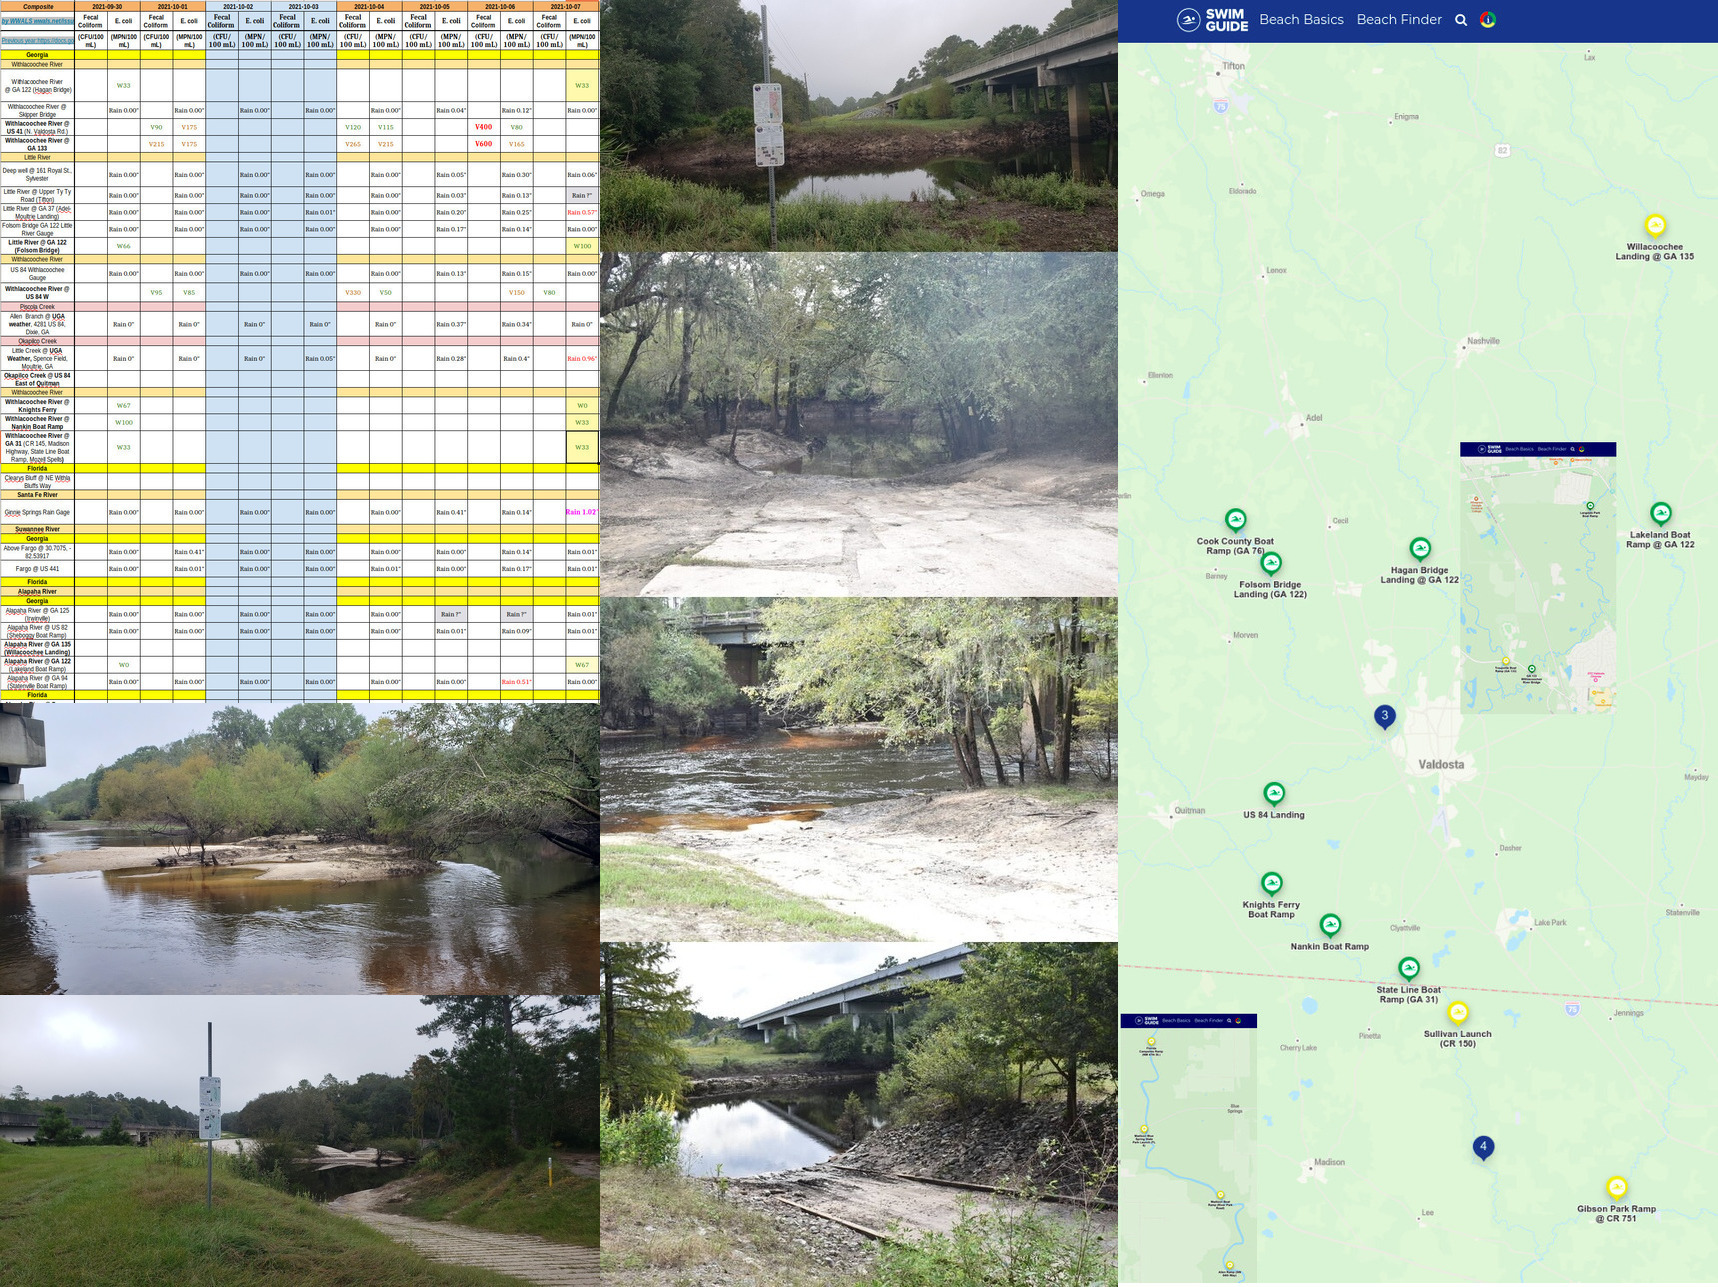 [Chart, Little, Alapaha, Withlacoochee Rivers, Swim Guide]